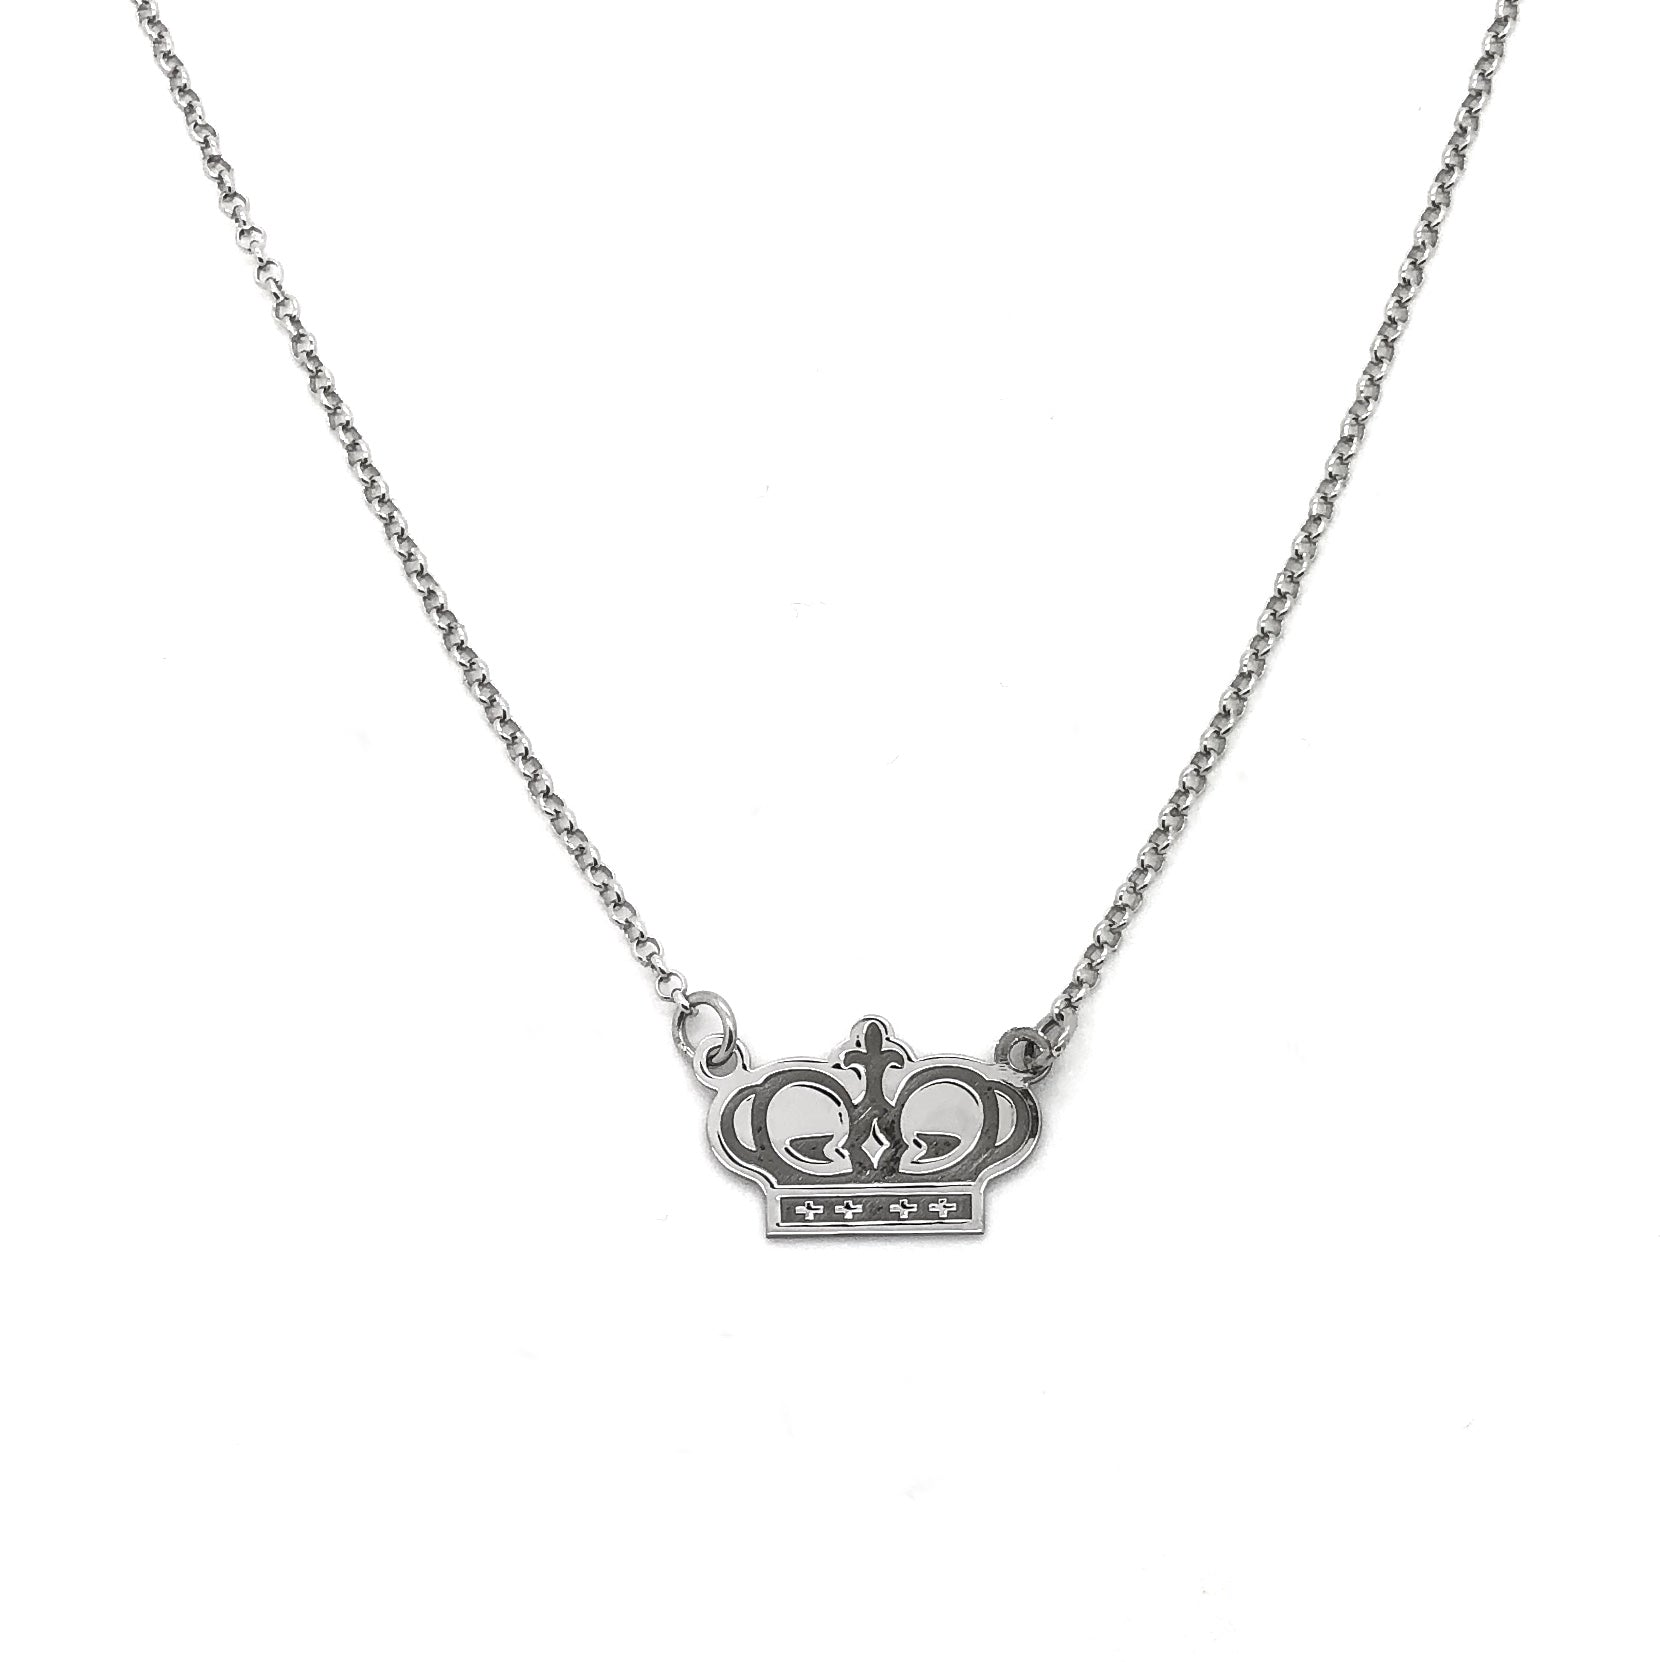 Argento 925 - Collana donna Crown - monility